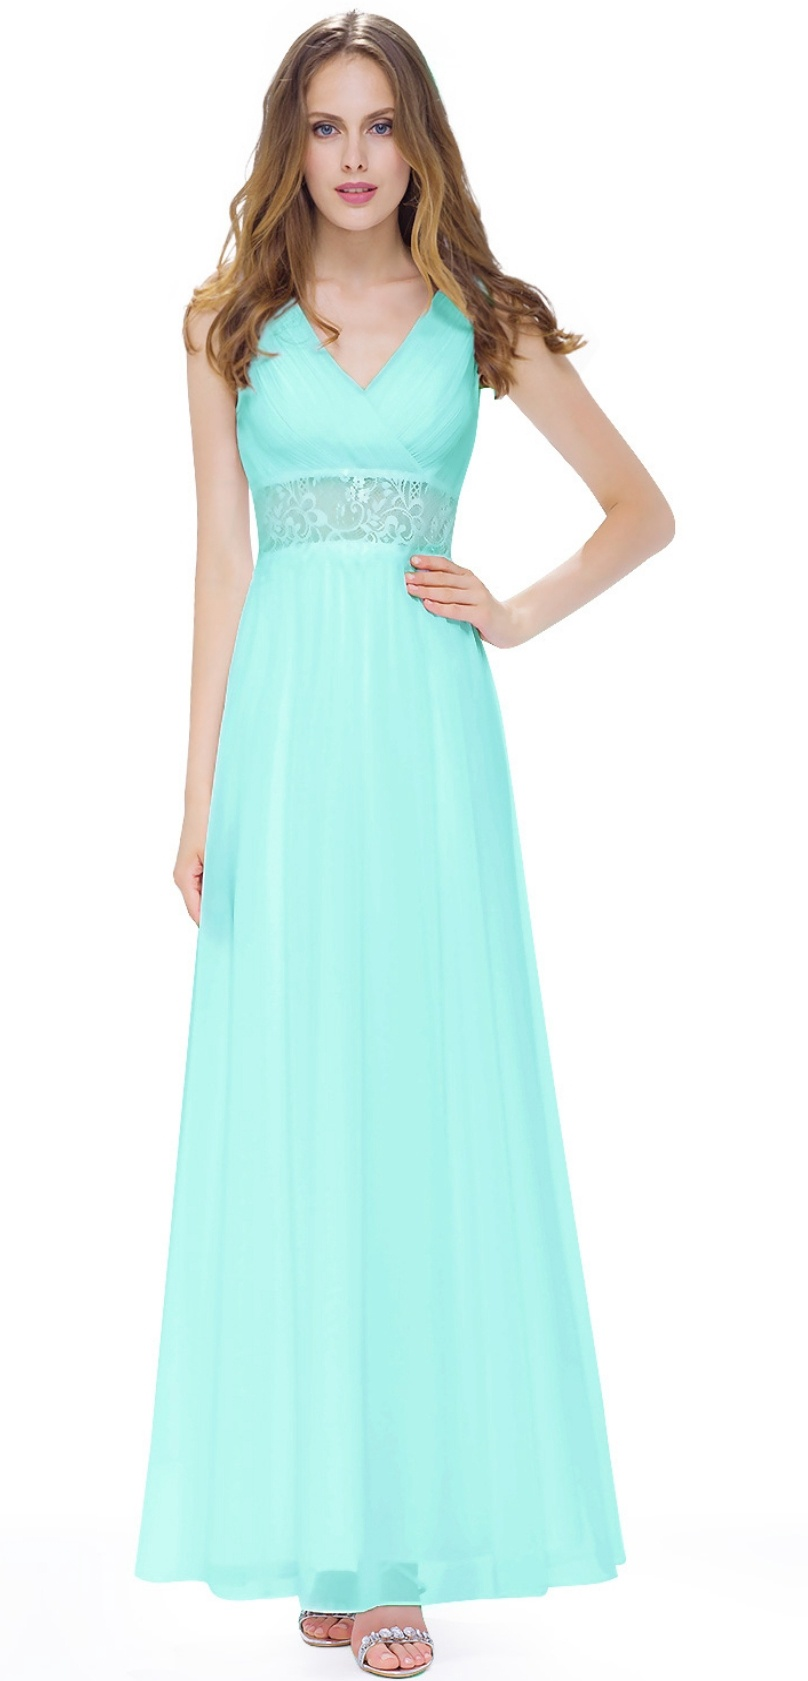 Floor Length Gown - Turquoise Green Empire Maxi Dress, NEW